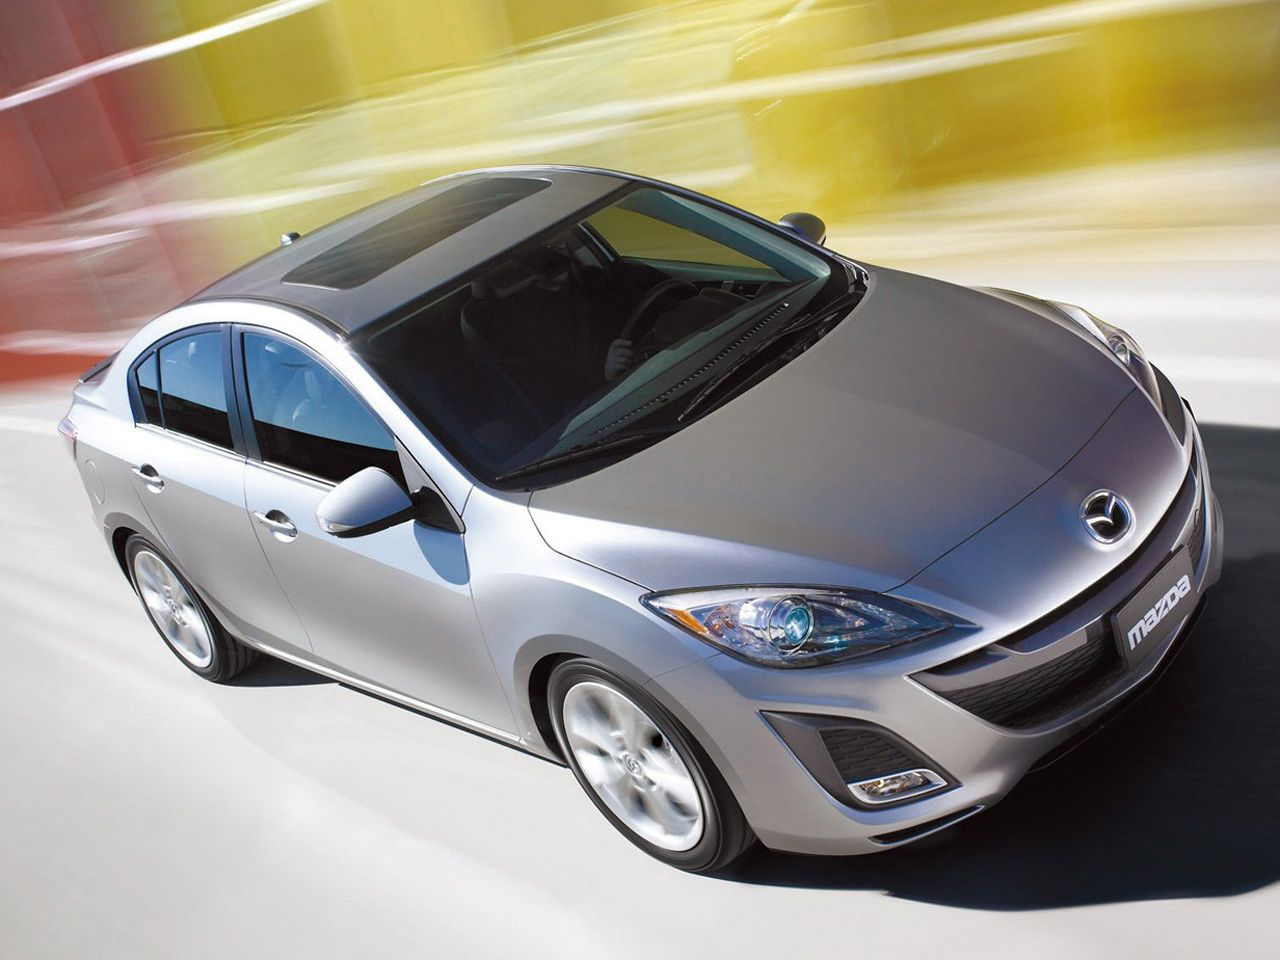 Mazda 3 2010 Silver Front Side High Angle Wallpaper 1280x960